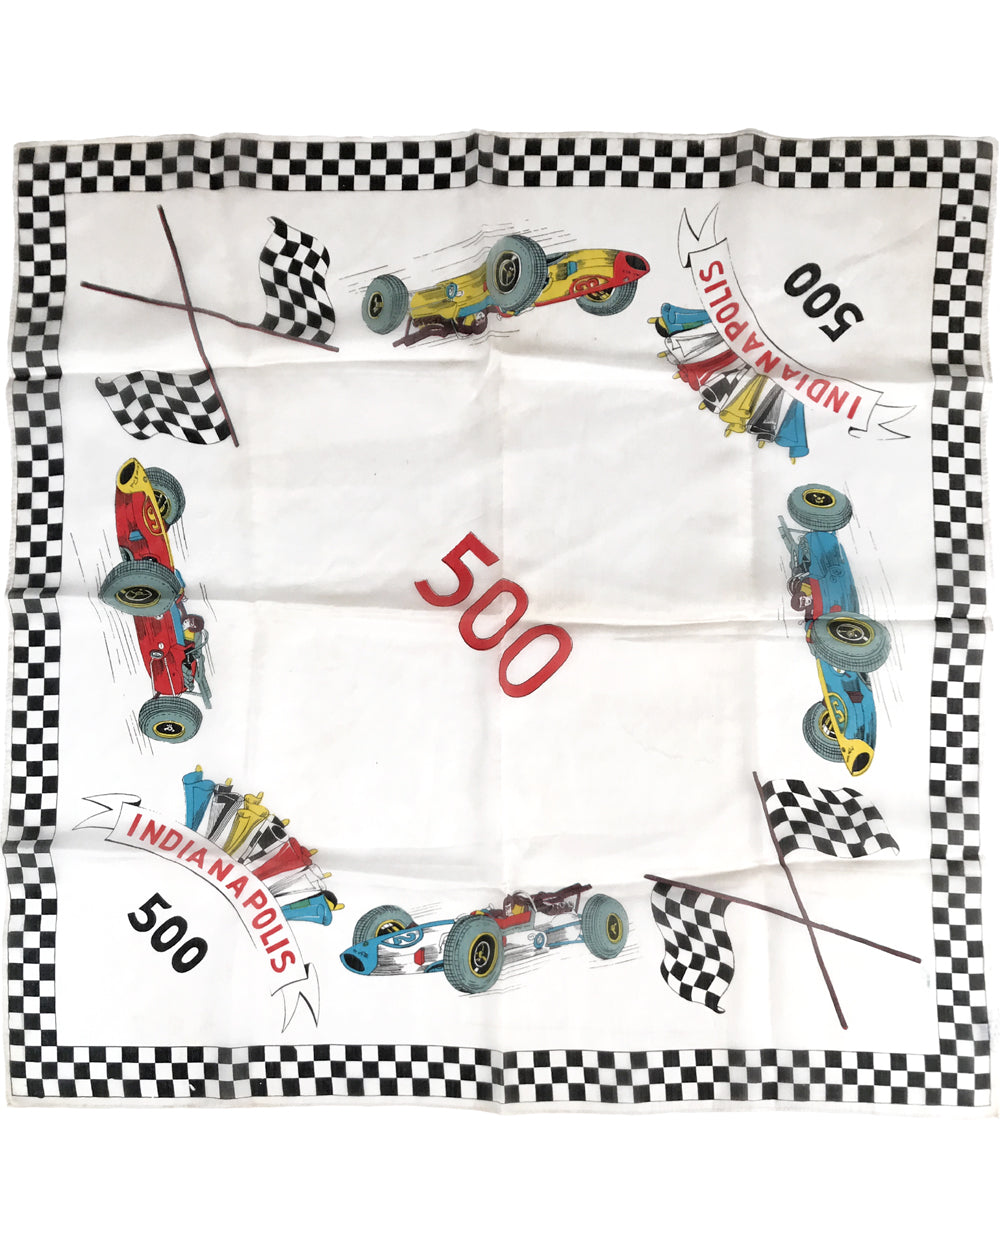 Indianapolis 500 mid 1960's period scarf